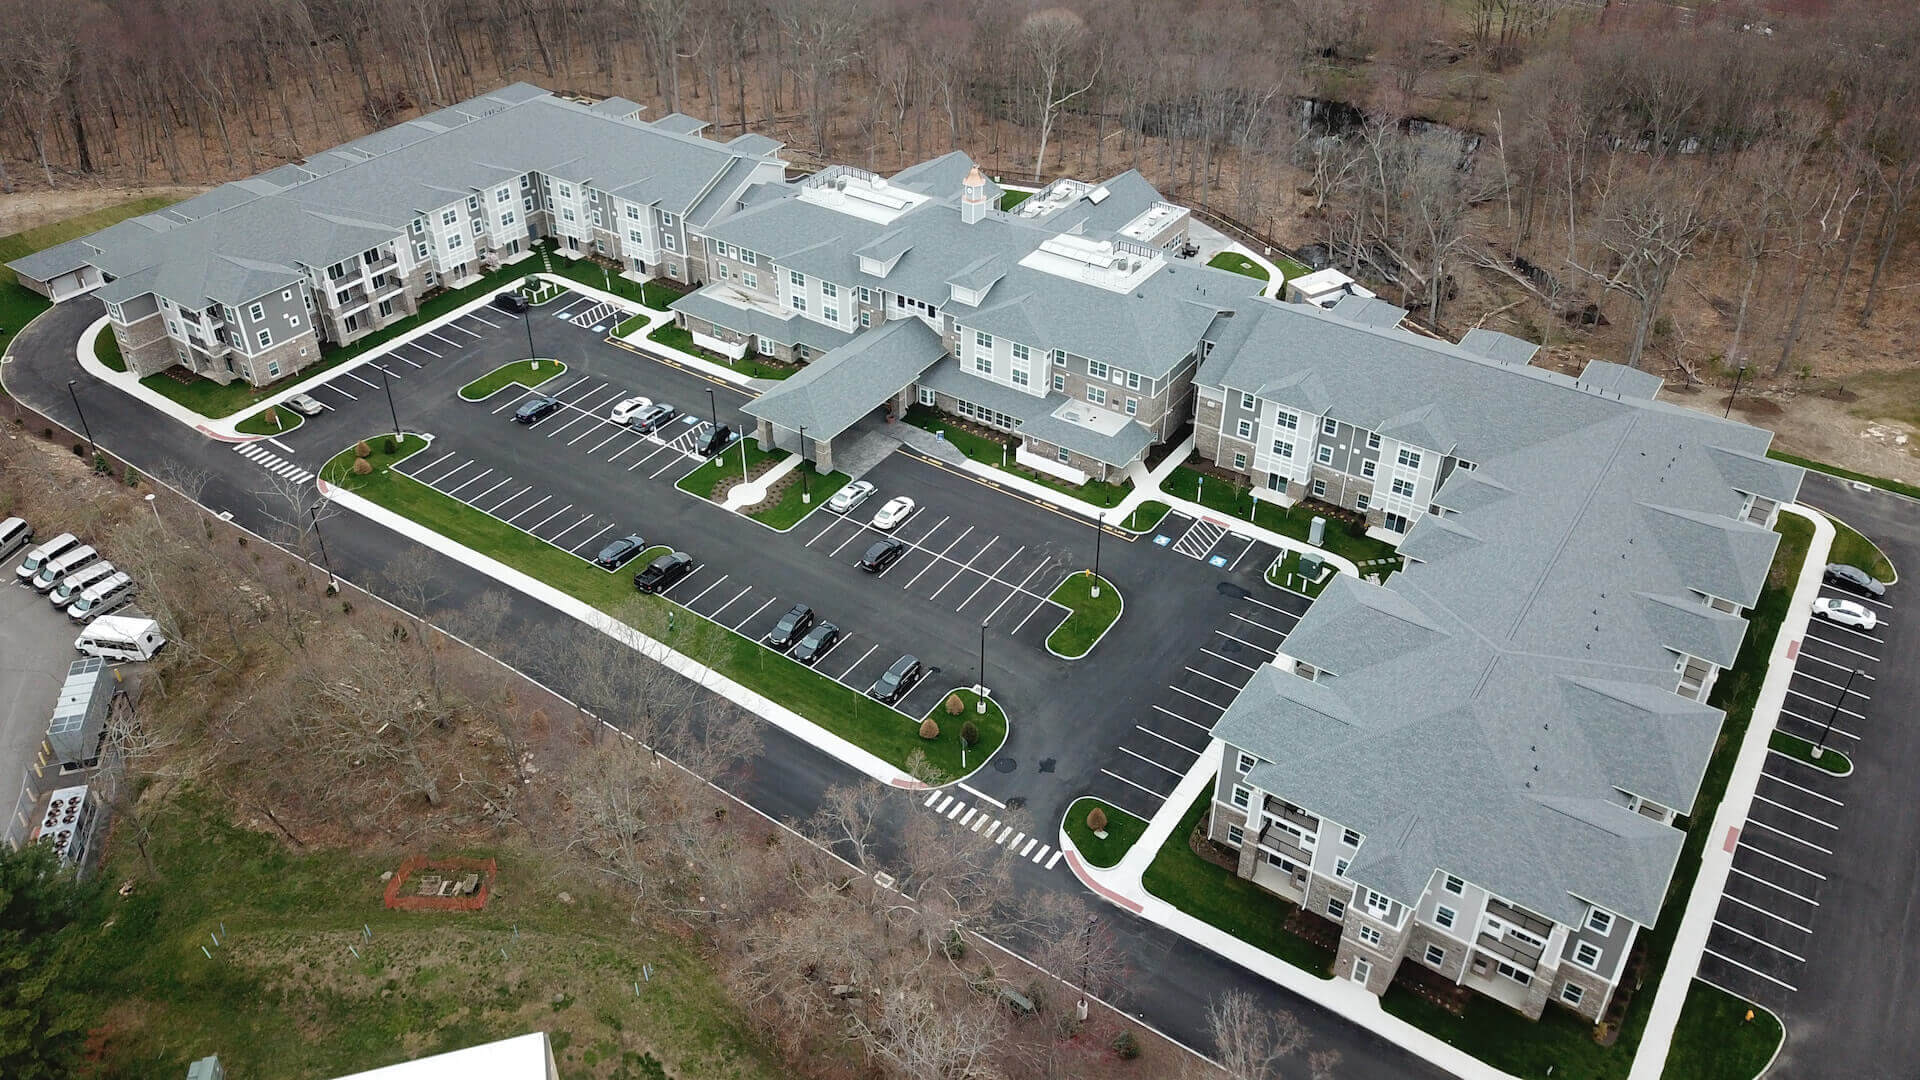 Aerial view of River Valley Retirement Community from April 2021